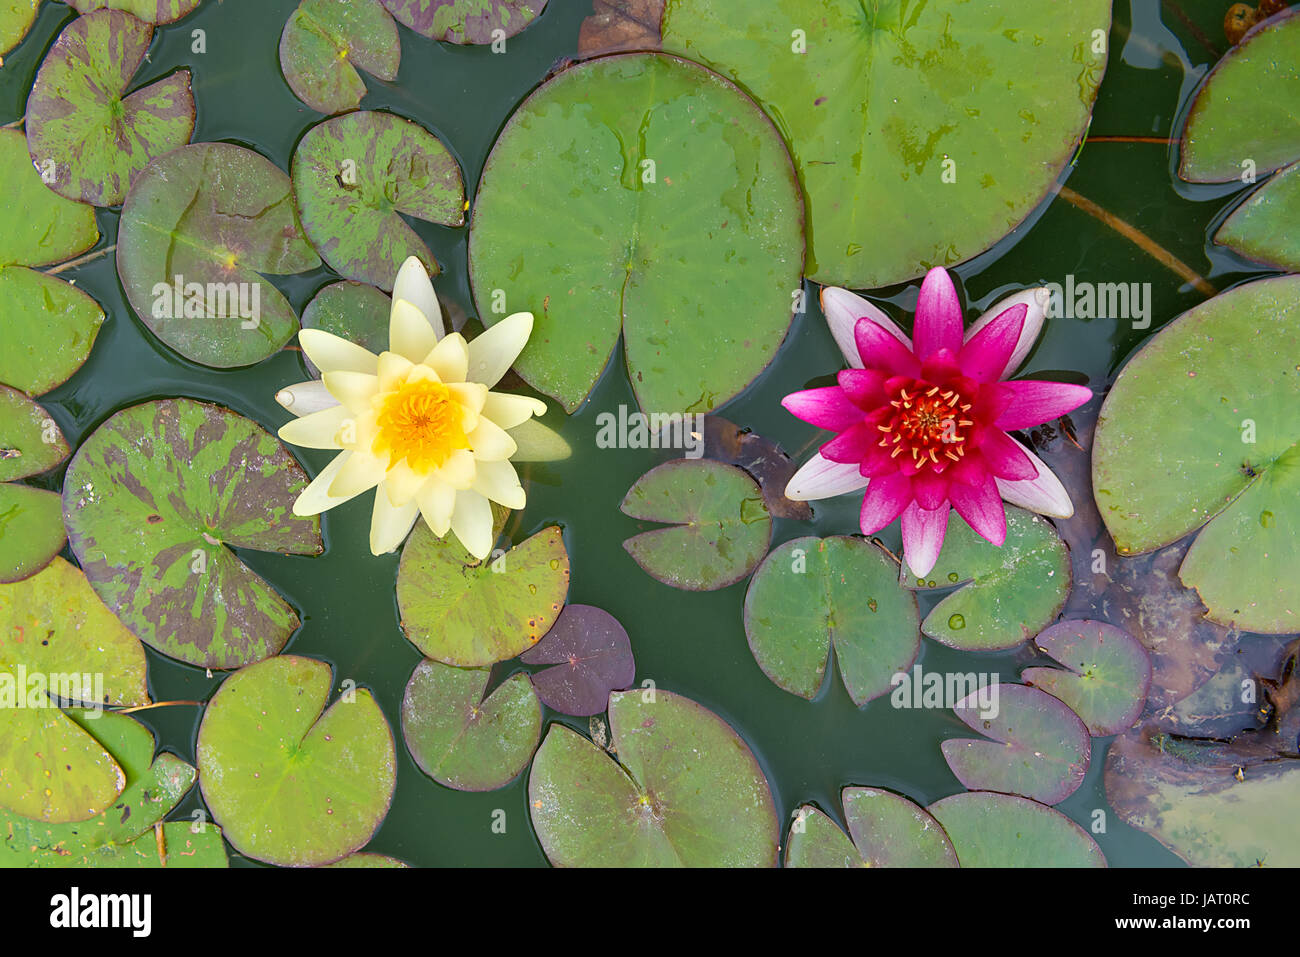 White lily pad flower stock photos white lily pad flower stock top view of two yellow and pink nymphaea lily pad flowers stock image izmirmasajfo